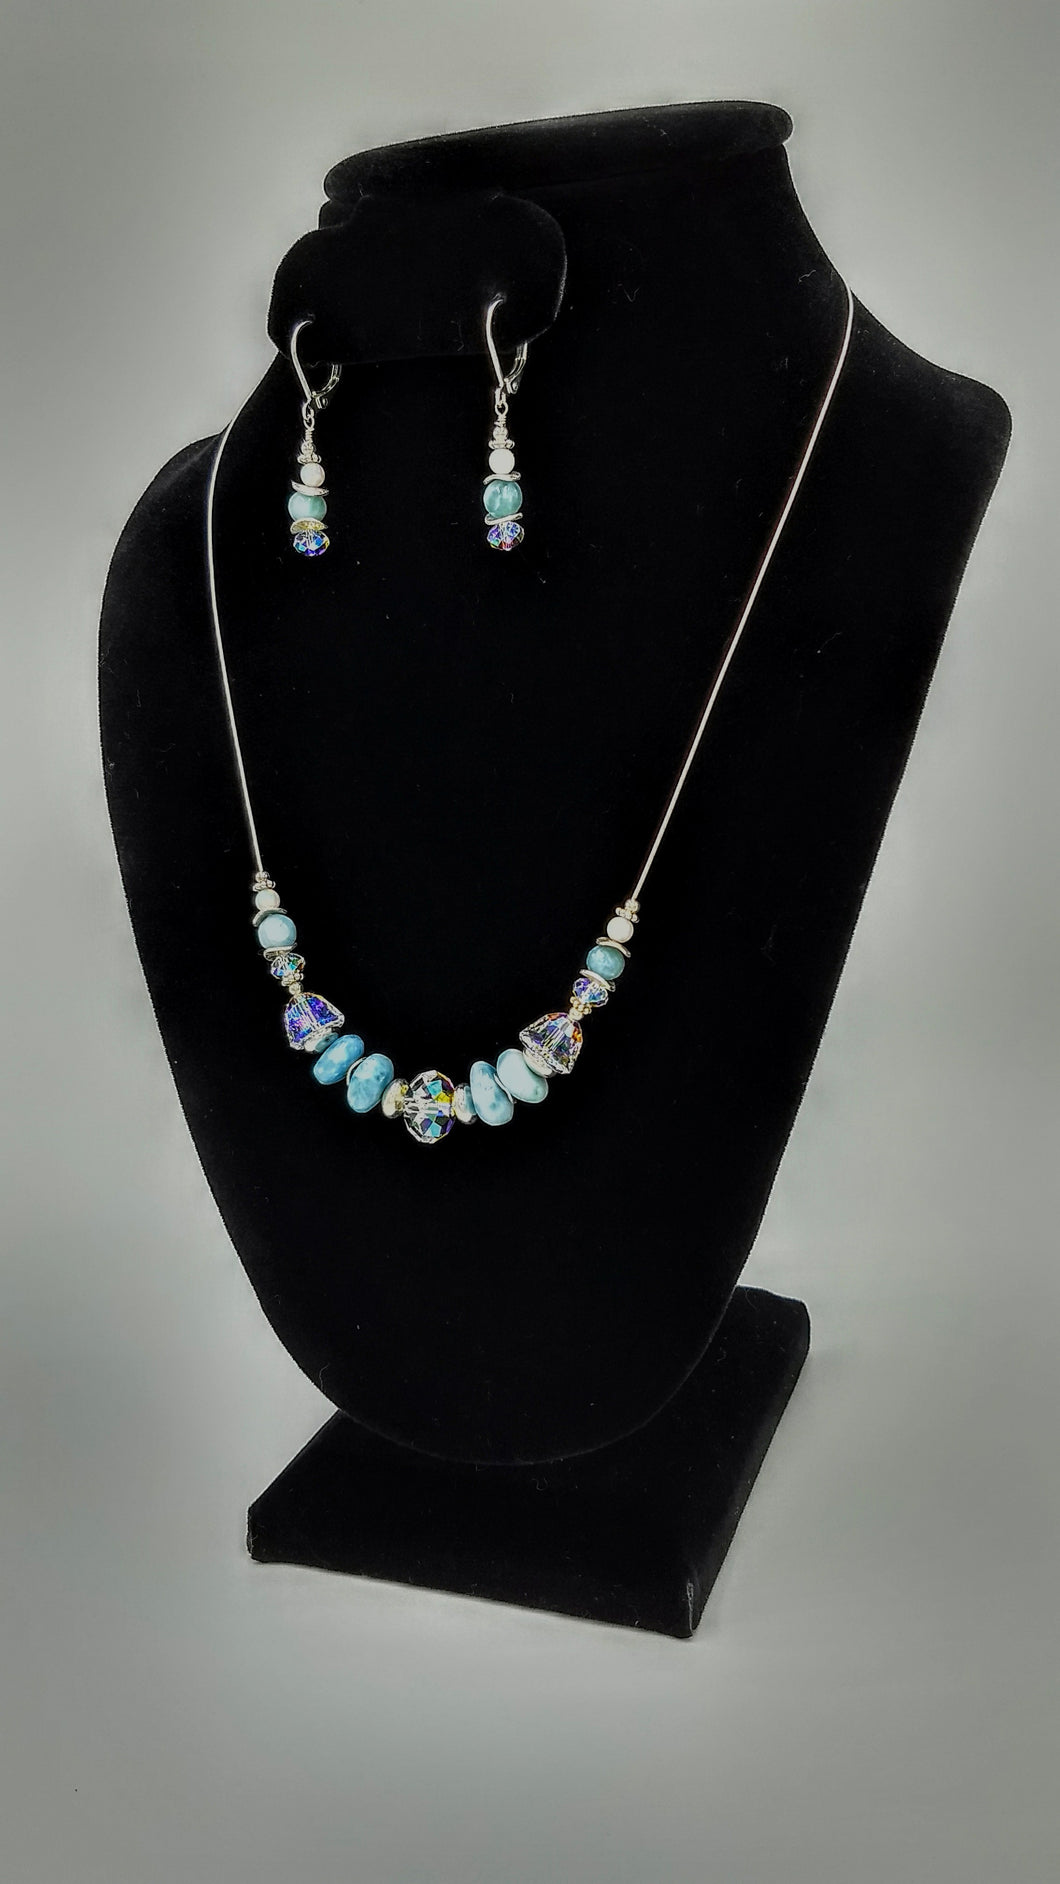 Larimar and Swarovski Rondelle Long Necklace and Earrings set